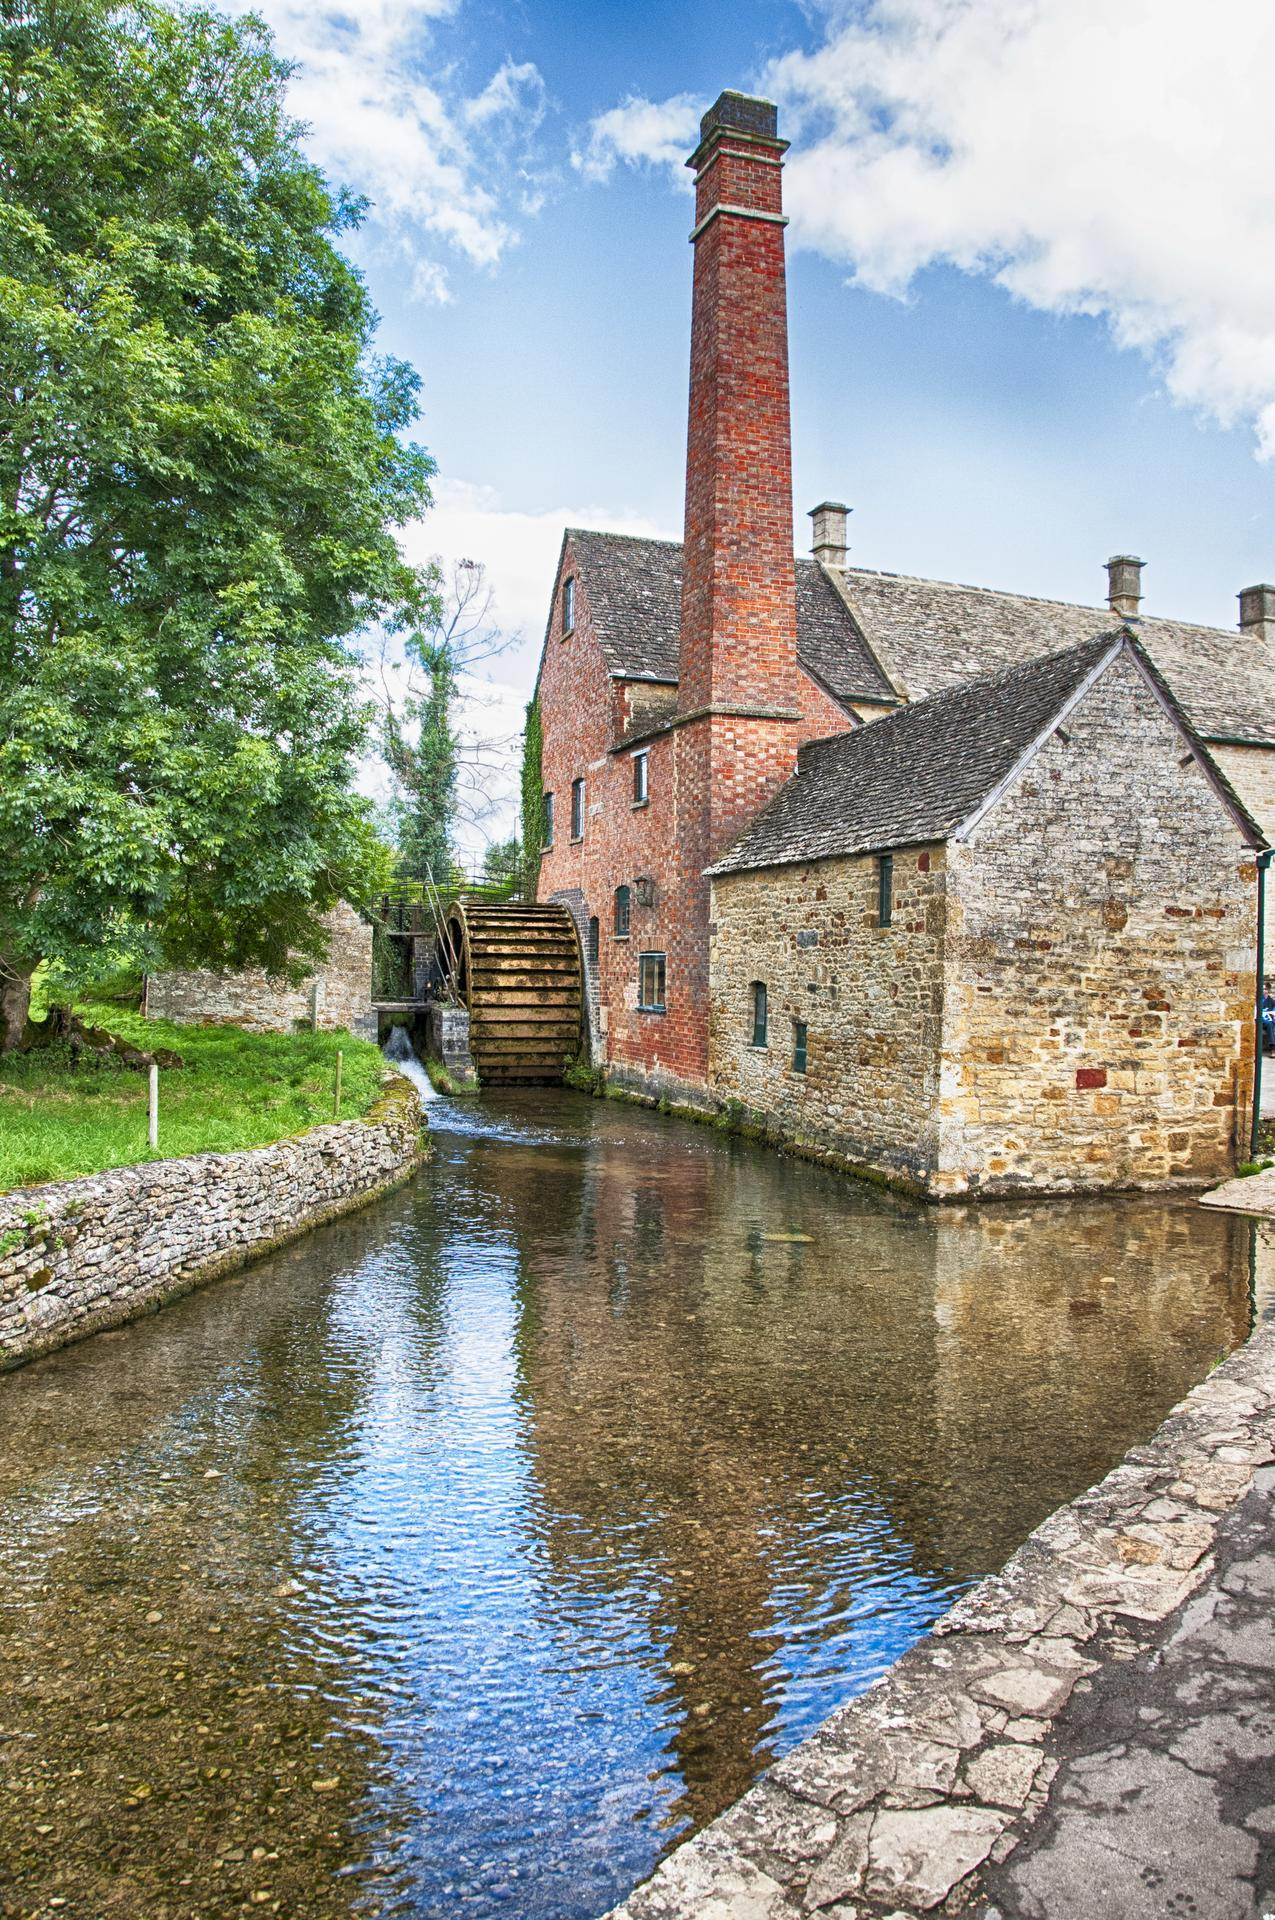 The Mill @ Lower Slaughter in The Cotswolds